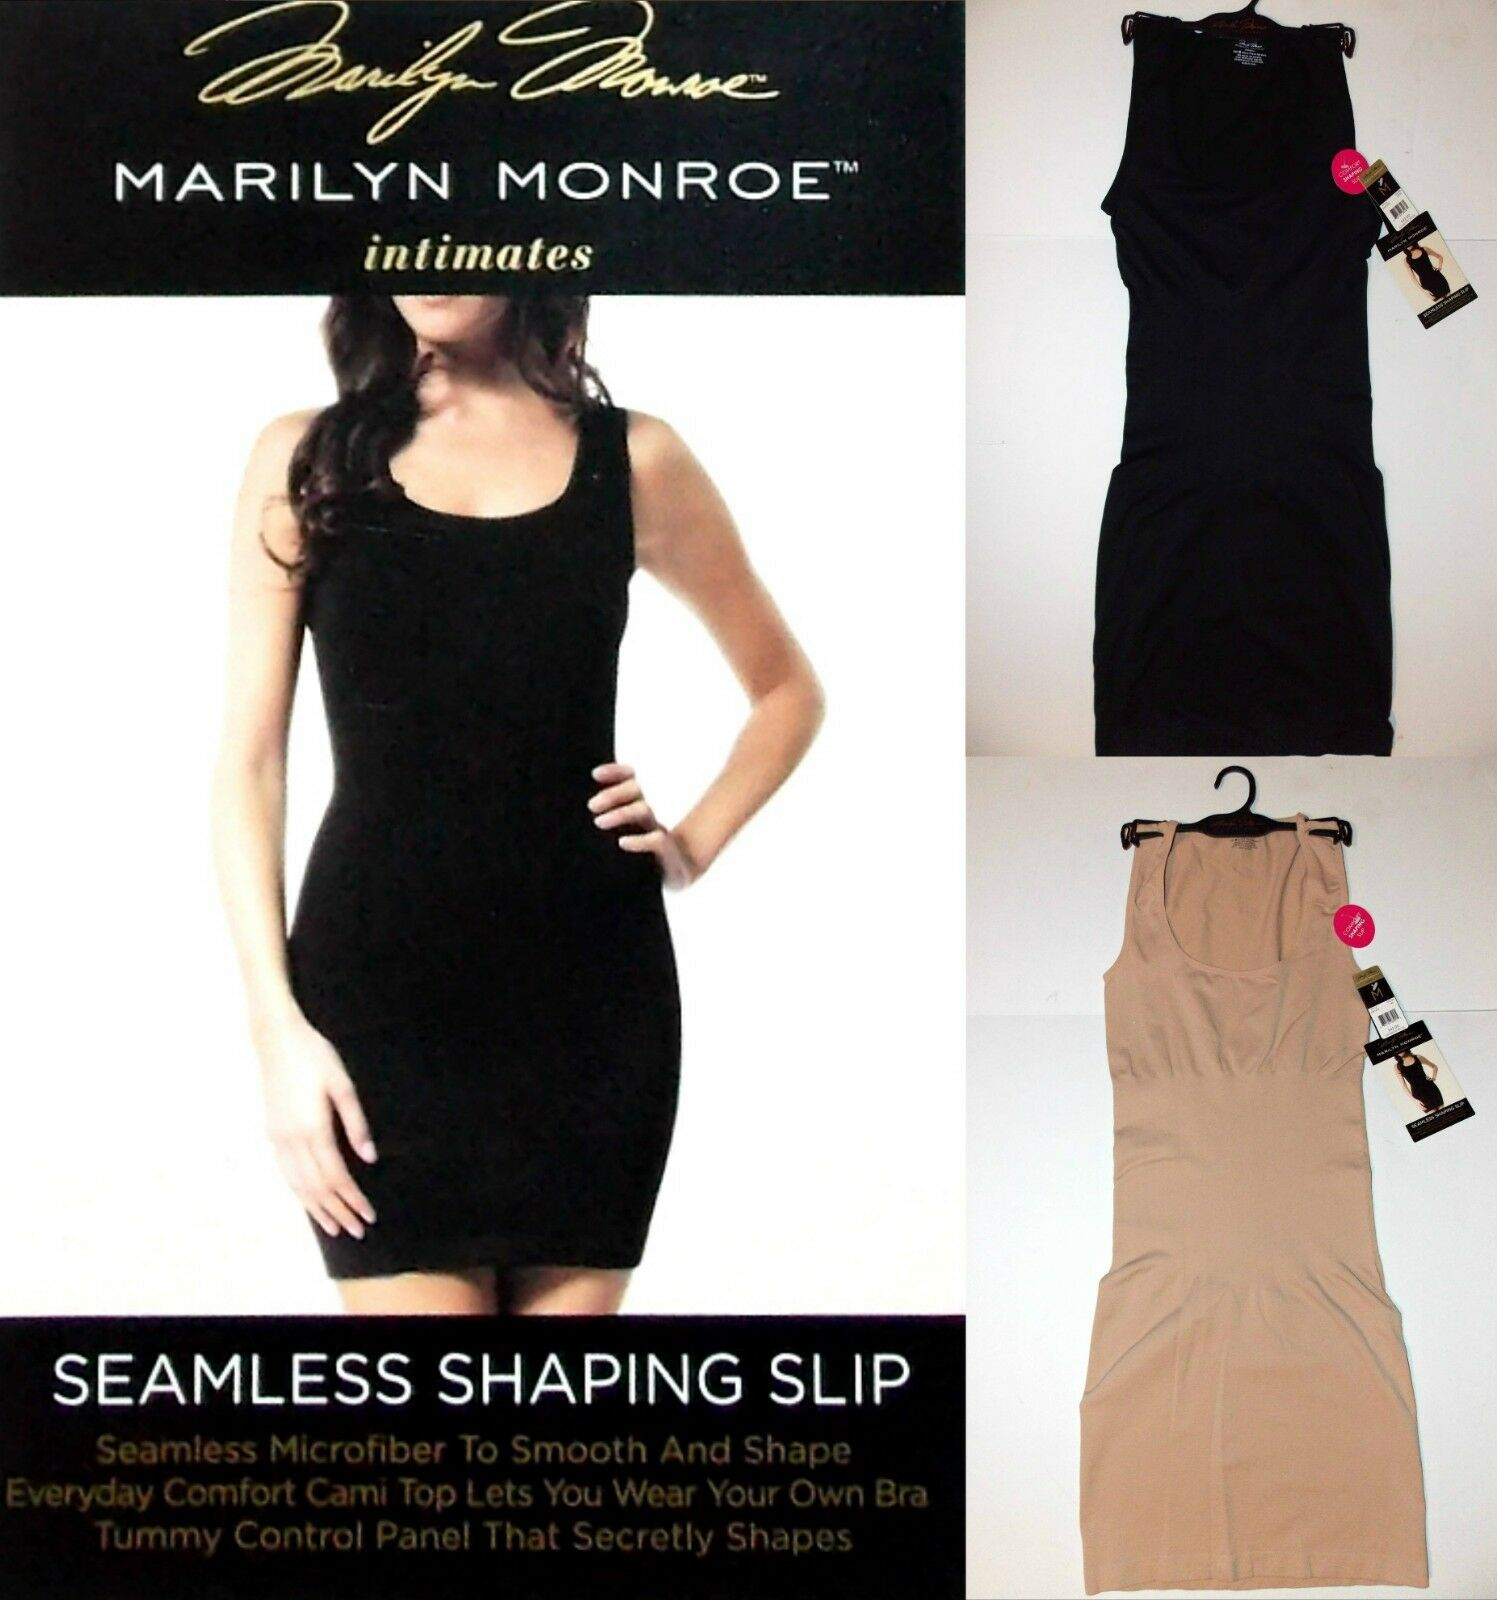 415d909c04540 NWT Marilyn Monroe Seamless Shaping Slip with tummy control panel S ...